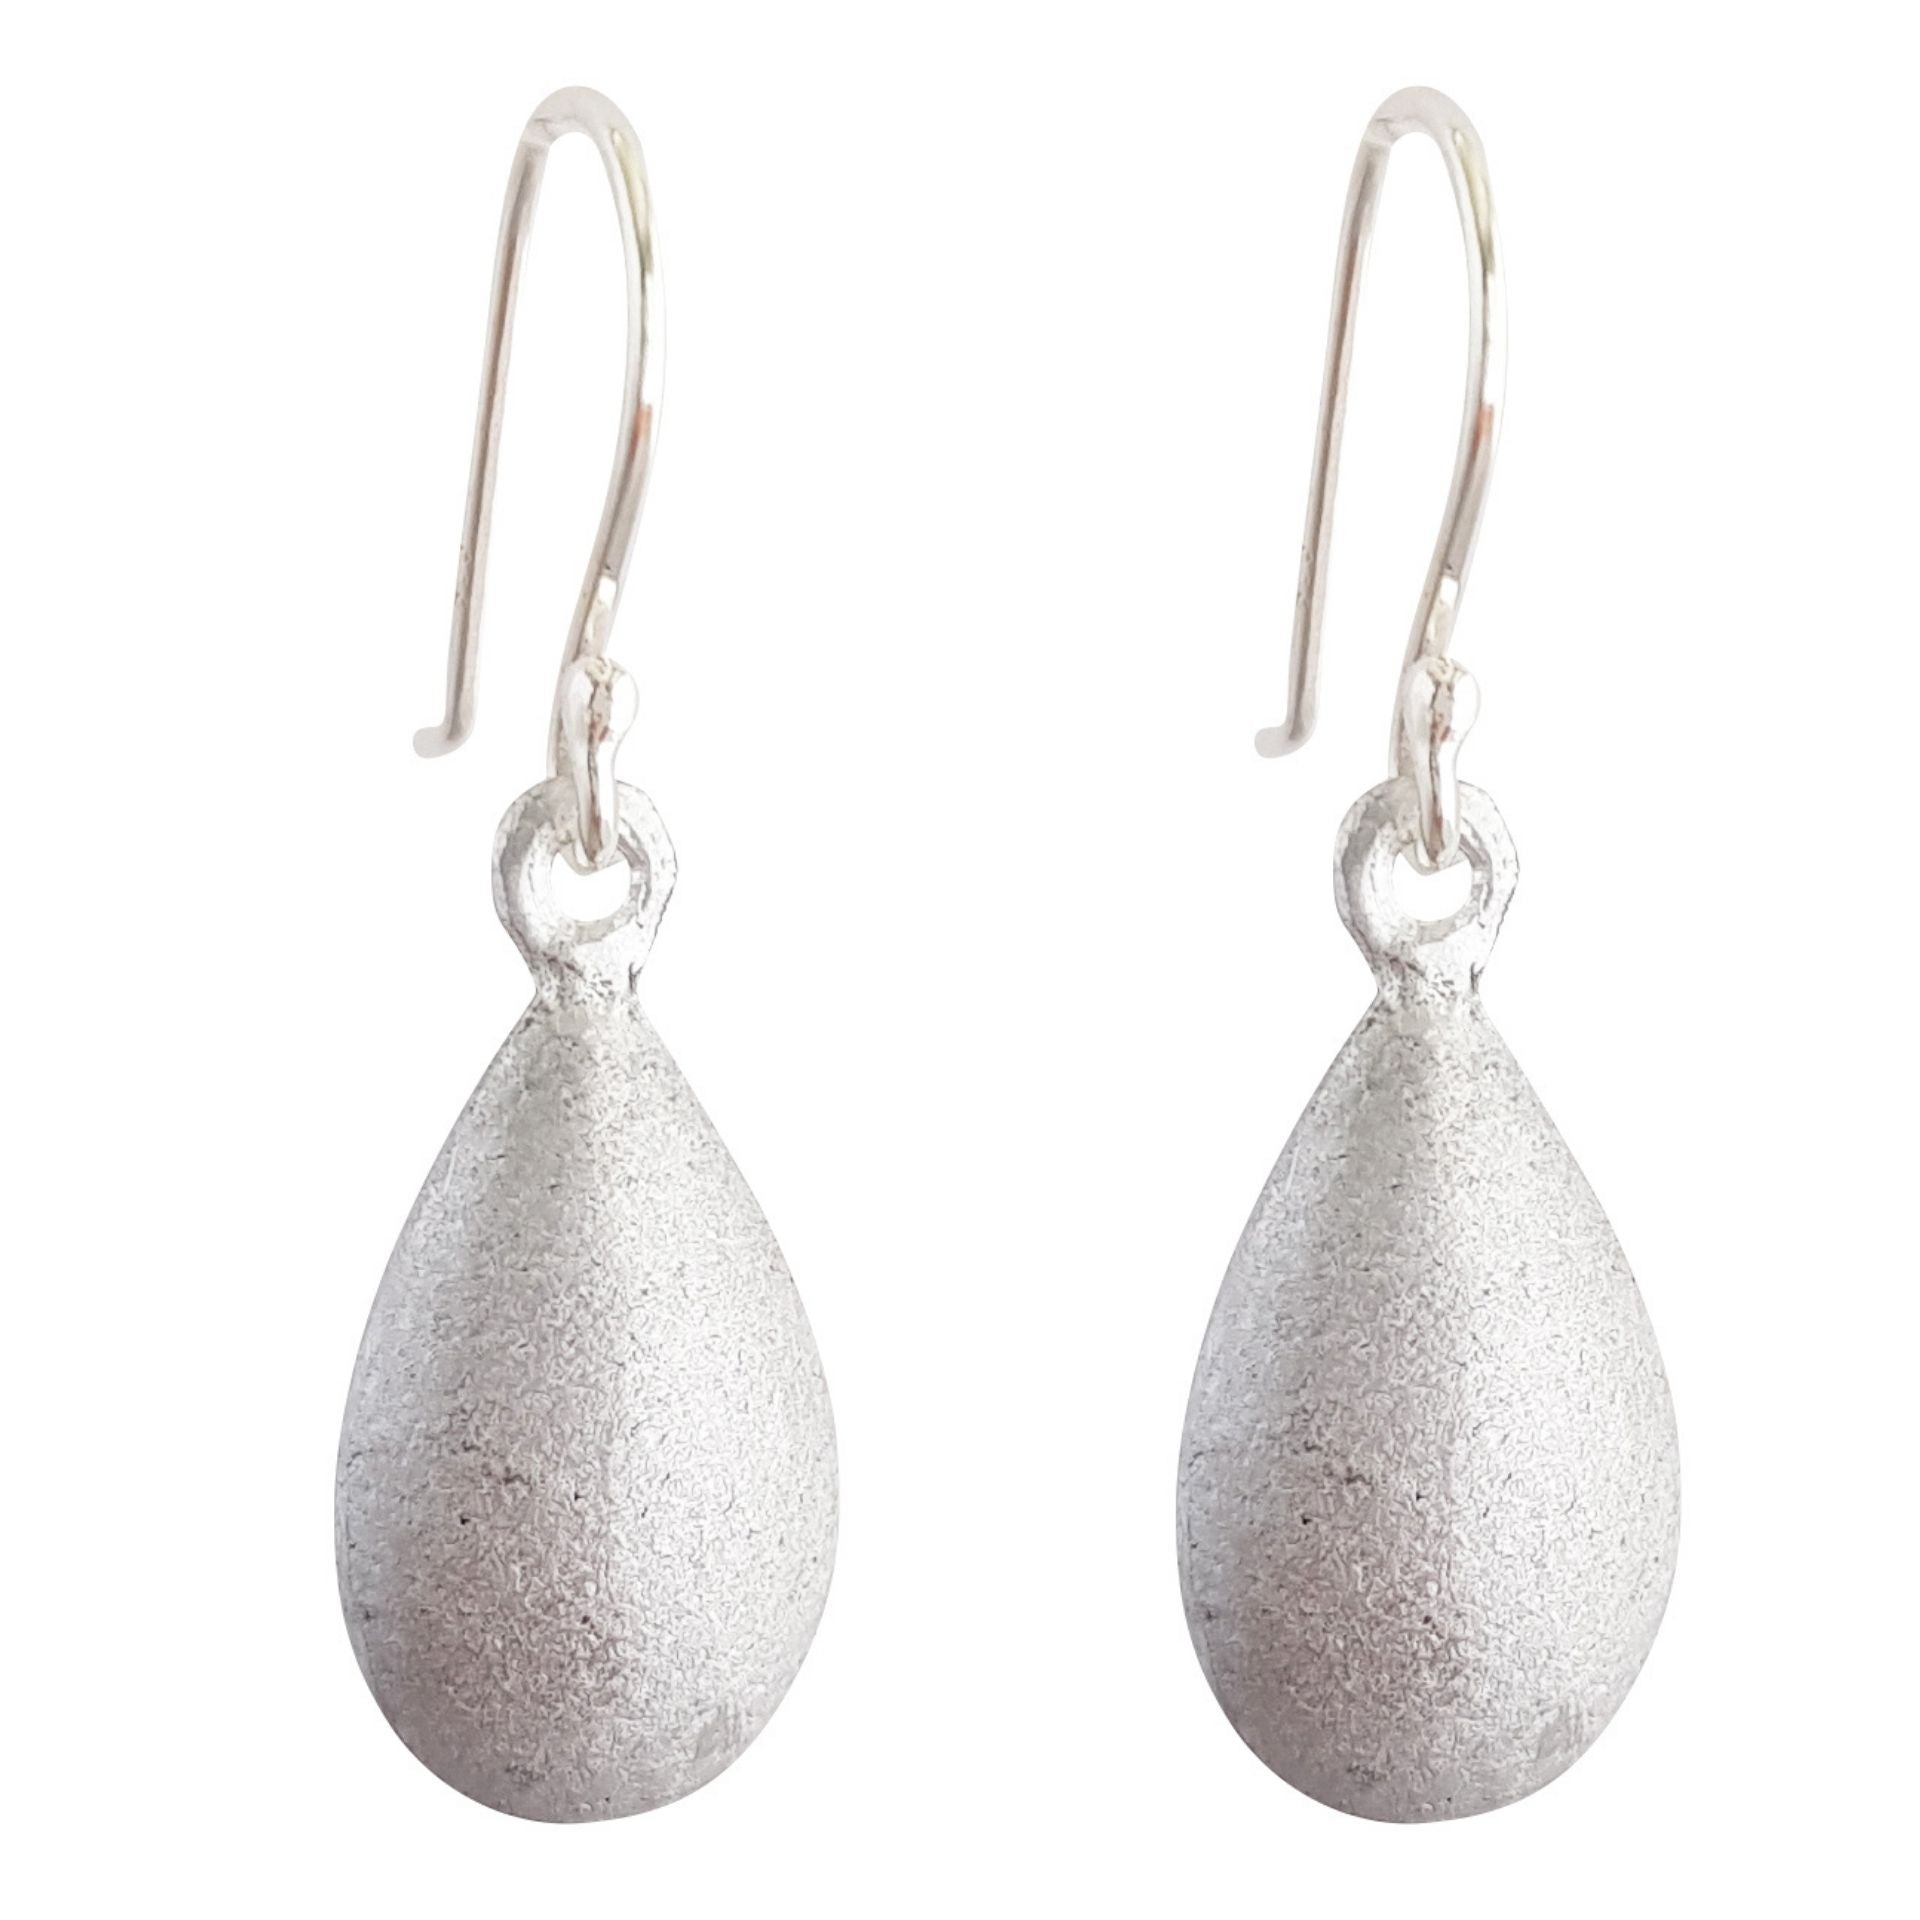 LOVEbomb Raindrop Sterling Silver Hook Earrings